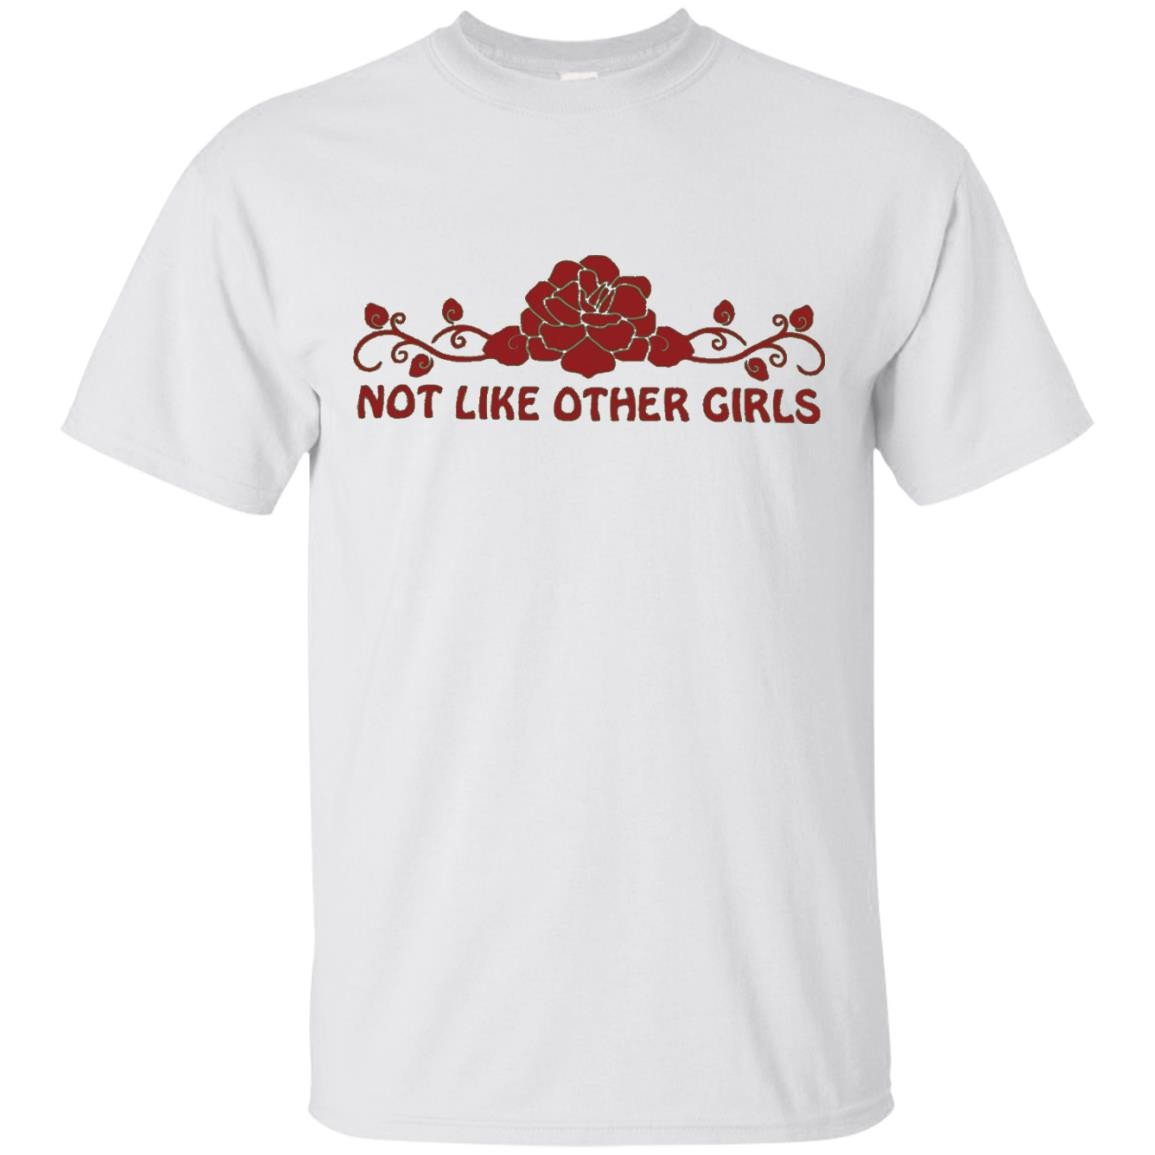 Not Like Other Girls Tshirt - T-Shirt